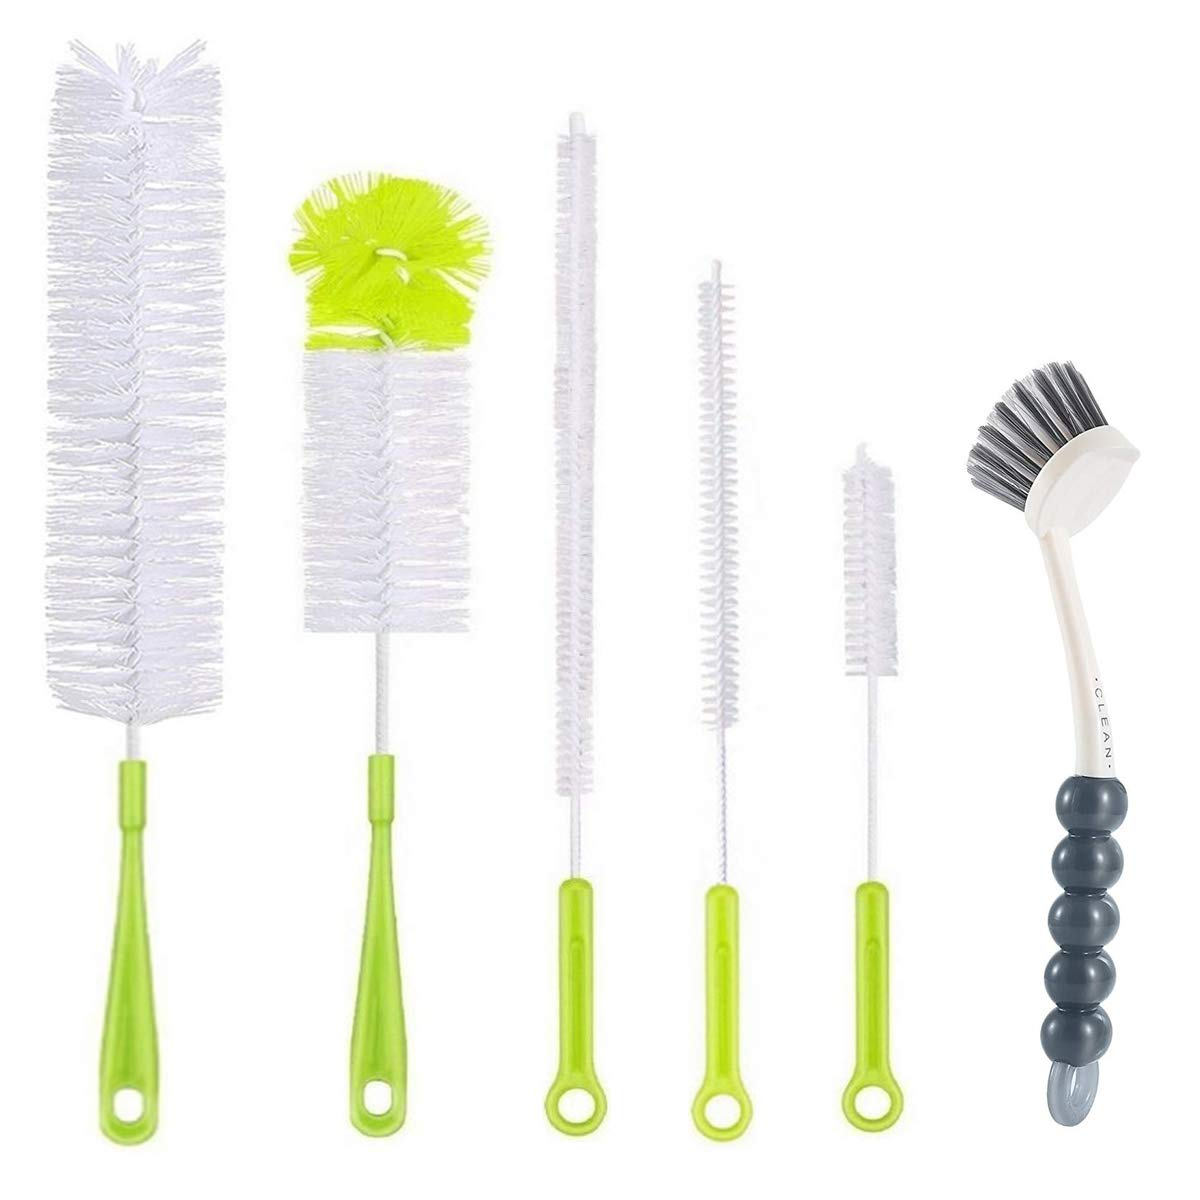 6Pcs Bottle Cleaning Brush Set-Long Handle Water Bottle Cleaner Brushes for Washing Wine Beer Baby Bottles,Include Grips Dish Brush|Bottle Brush|Kitchen Sink Brush|Straw Brush|Kettle Spout|Lid Brush